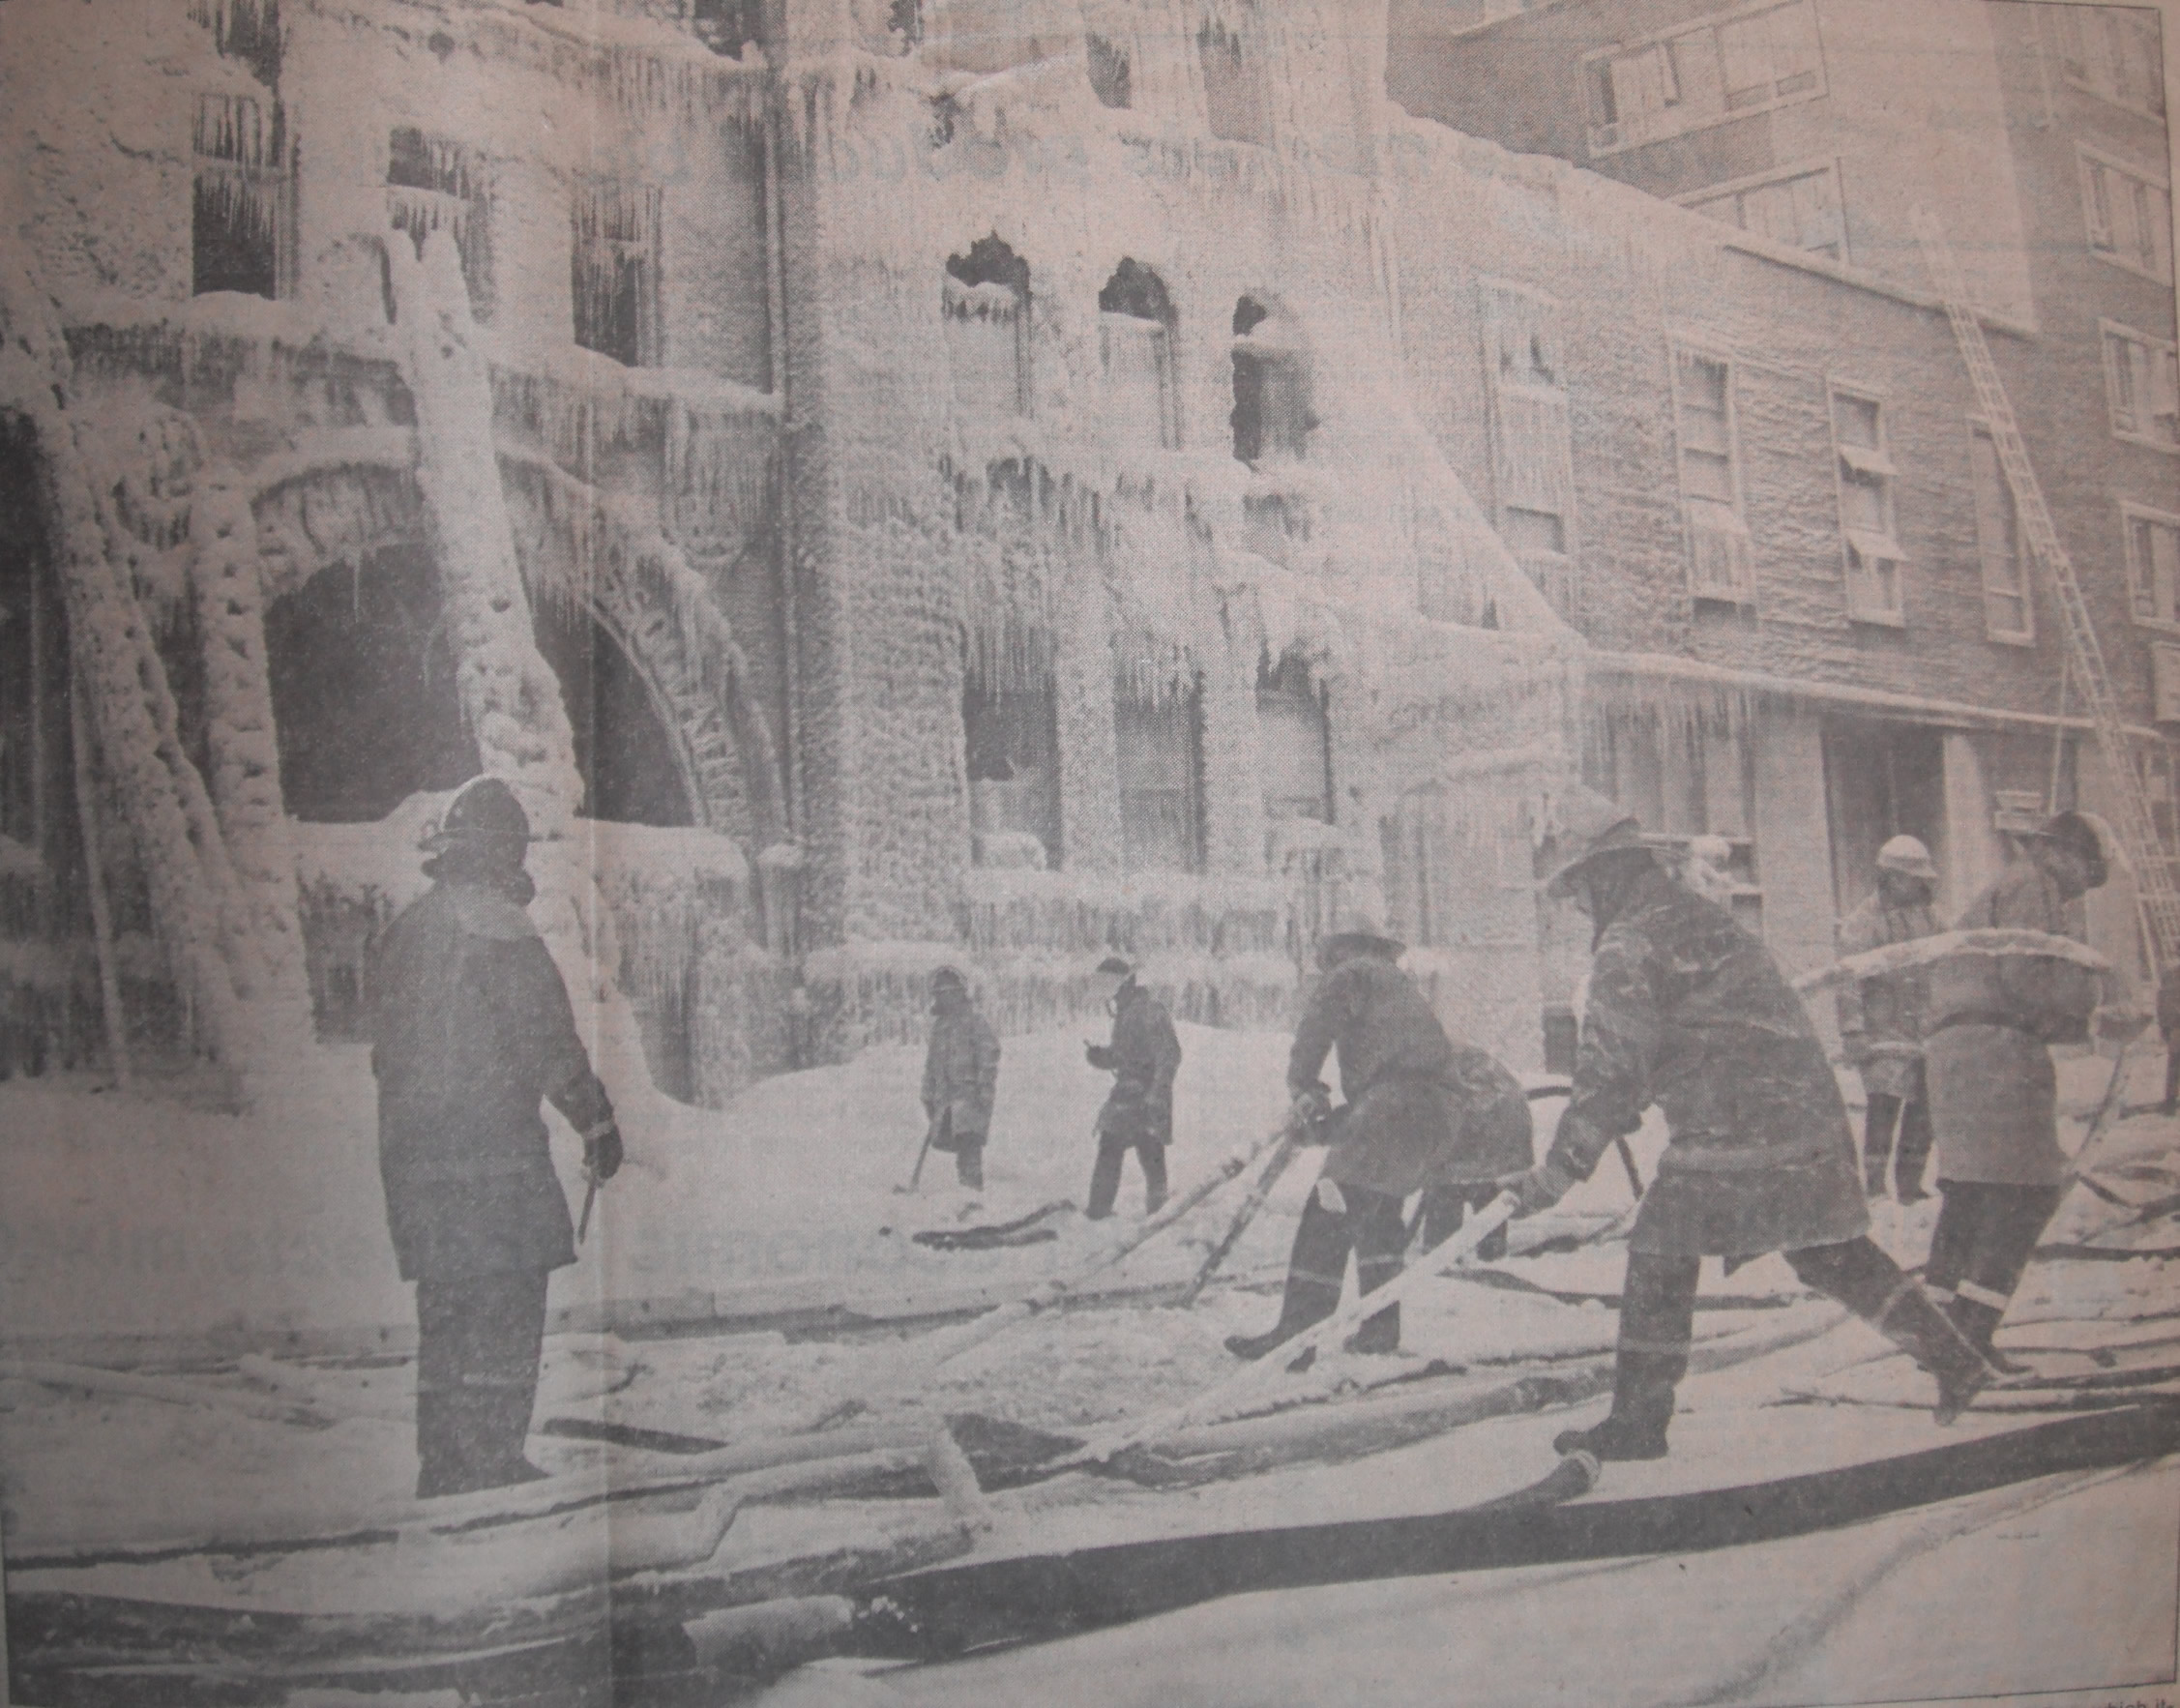 Firefighters pulling frozen lines from the ice that formed during the fire at the YM-YWCA fire.